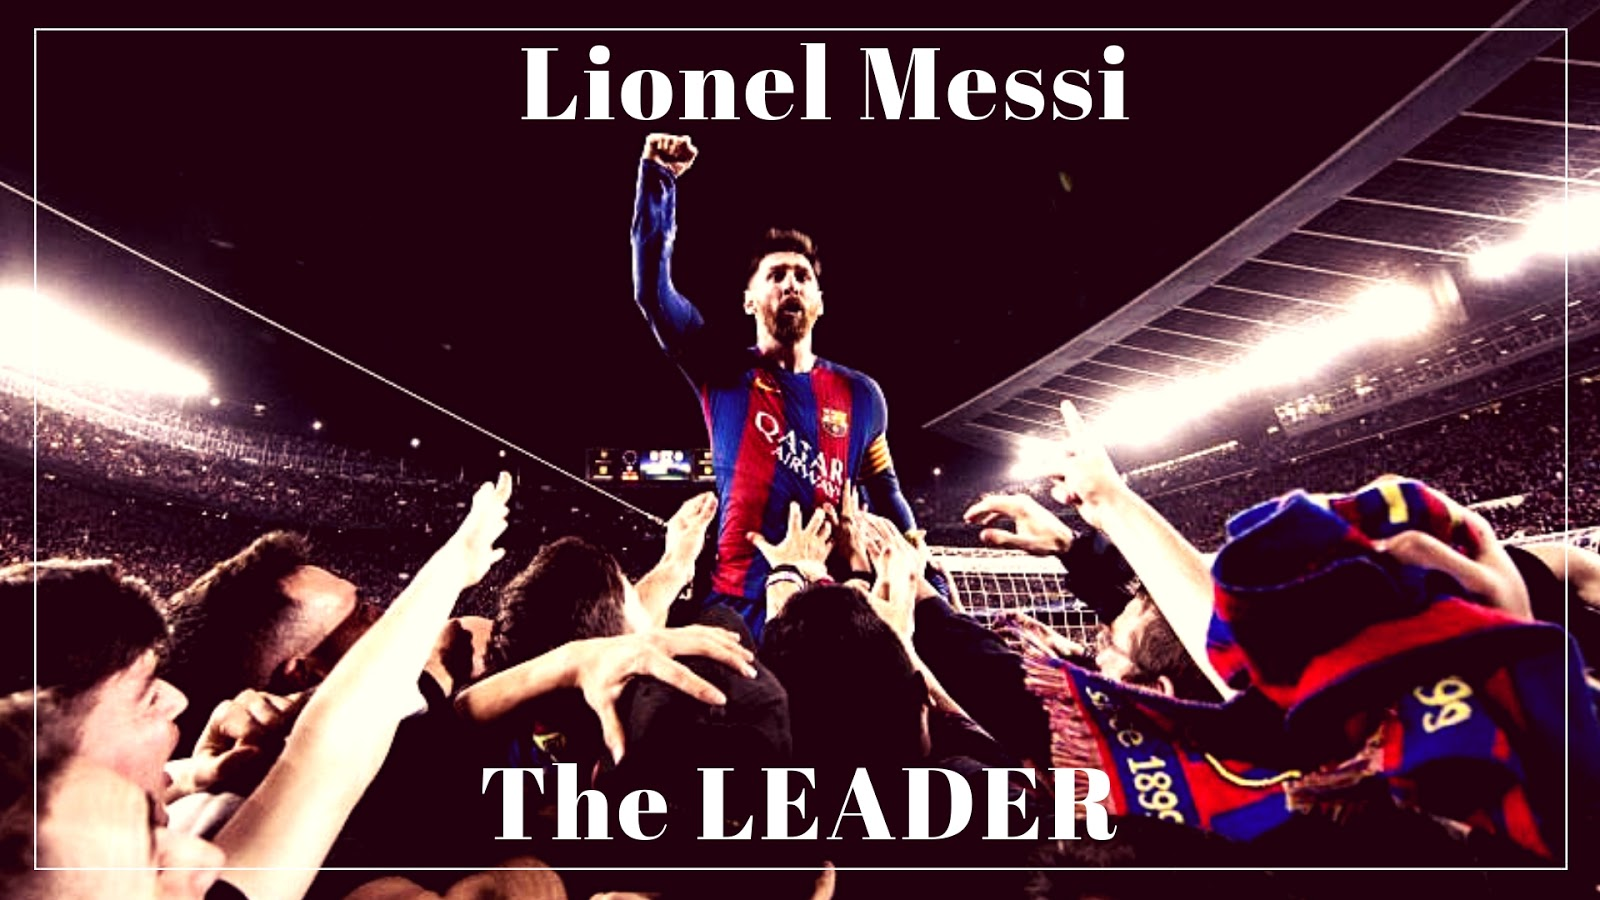 Lionel Messi enjoying leading FC Barcelona